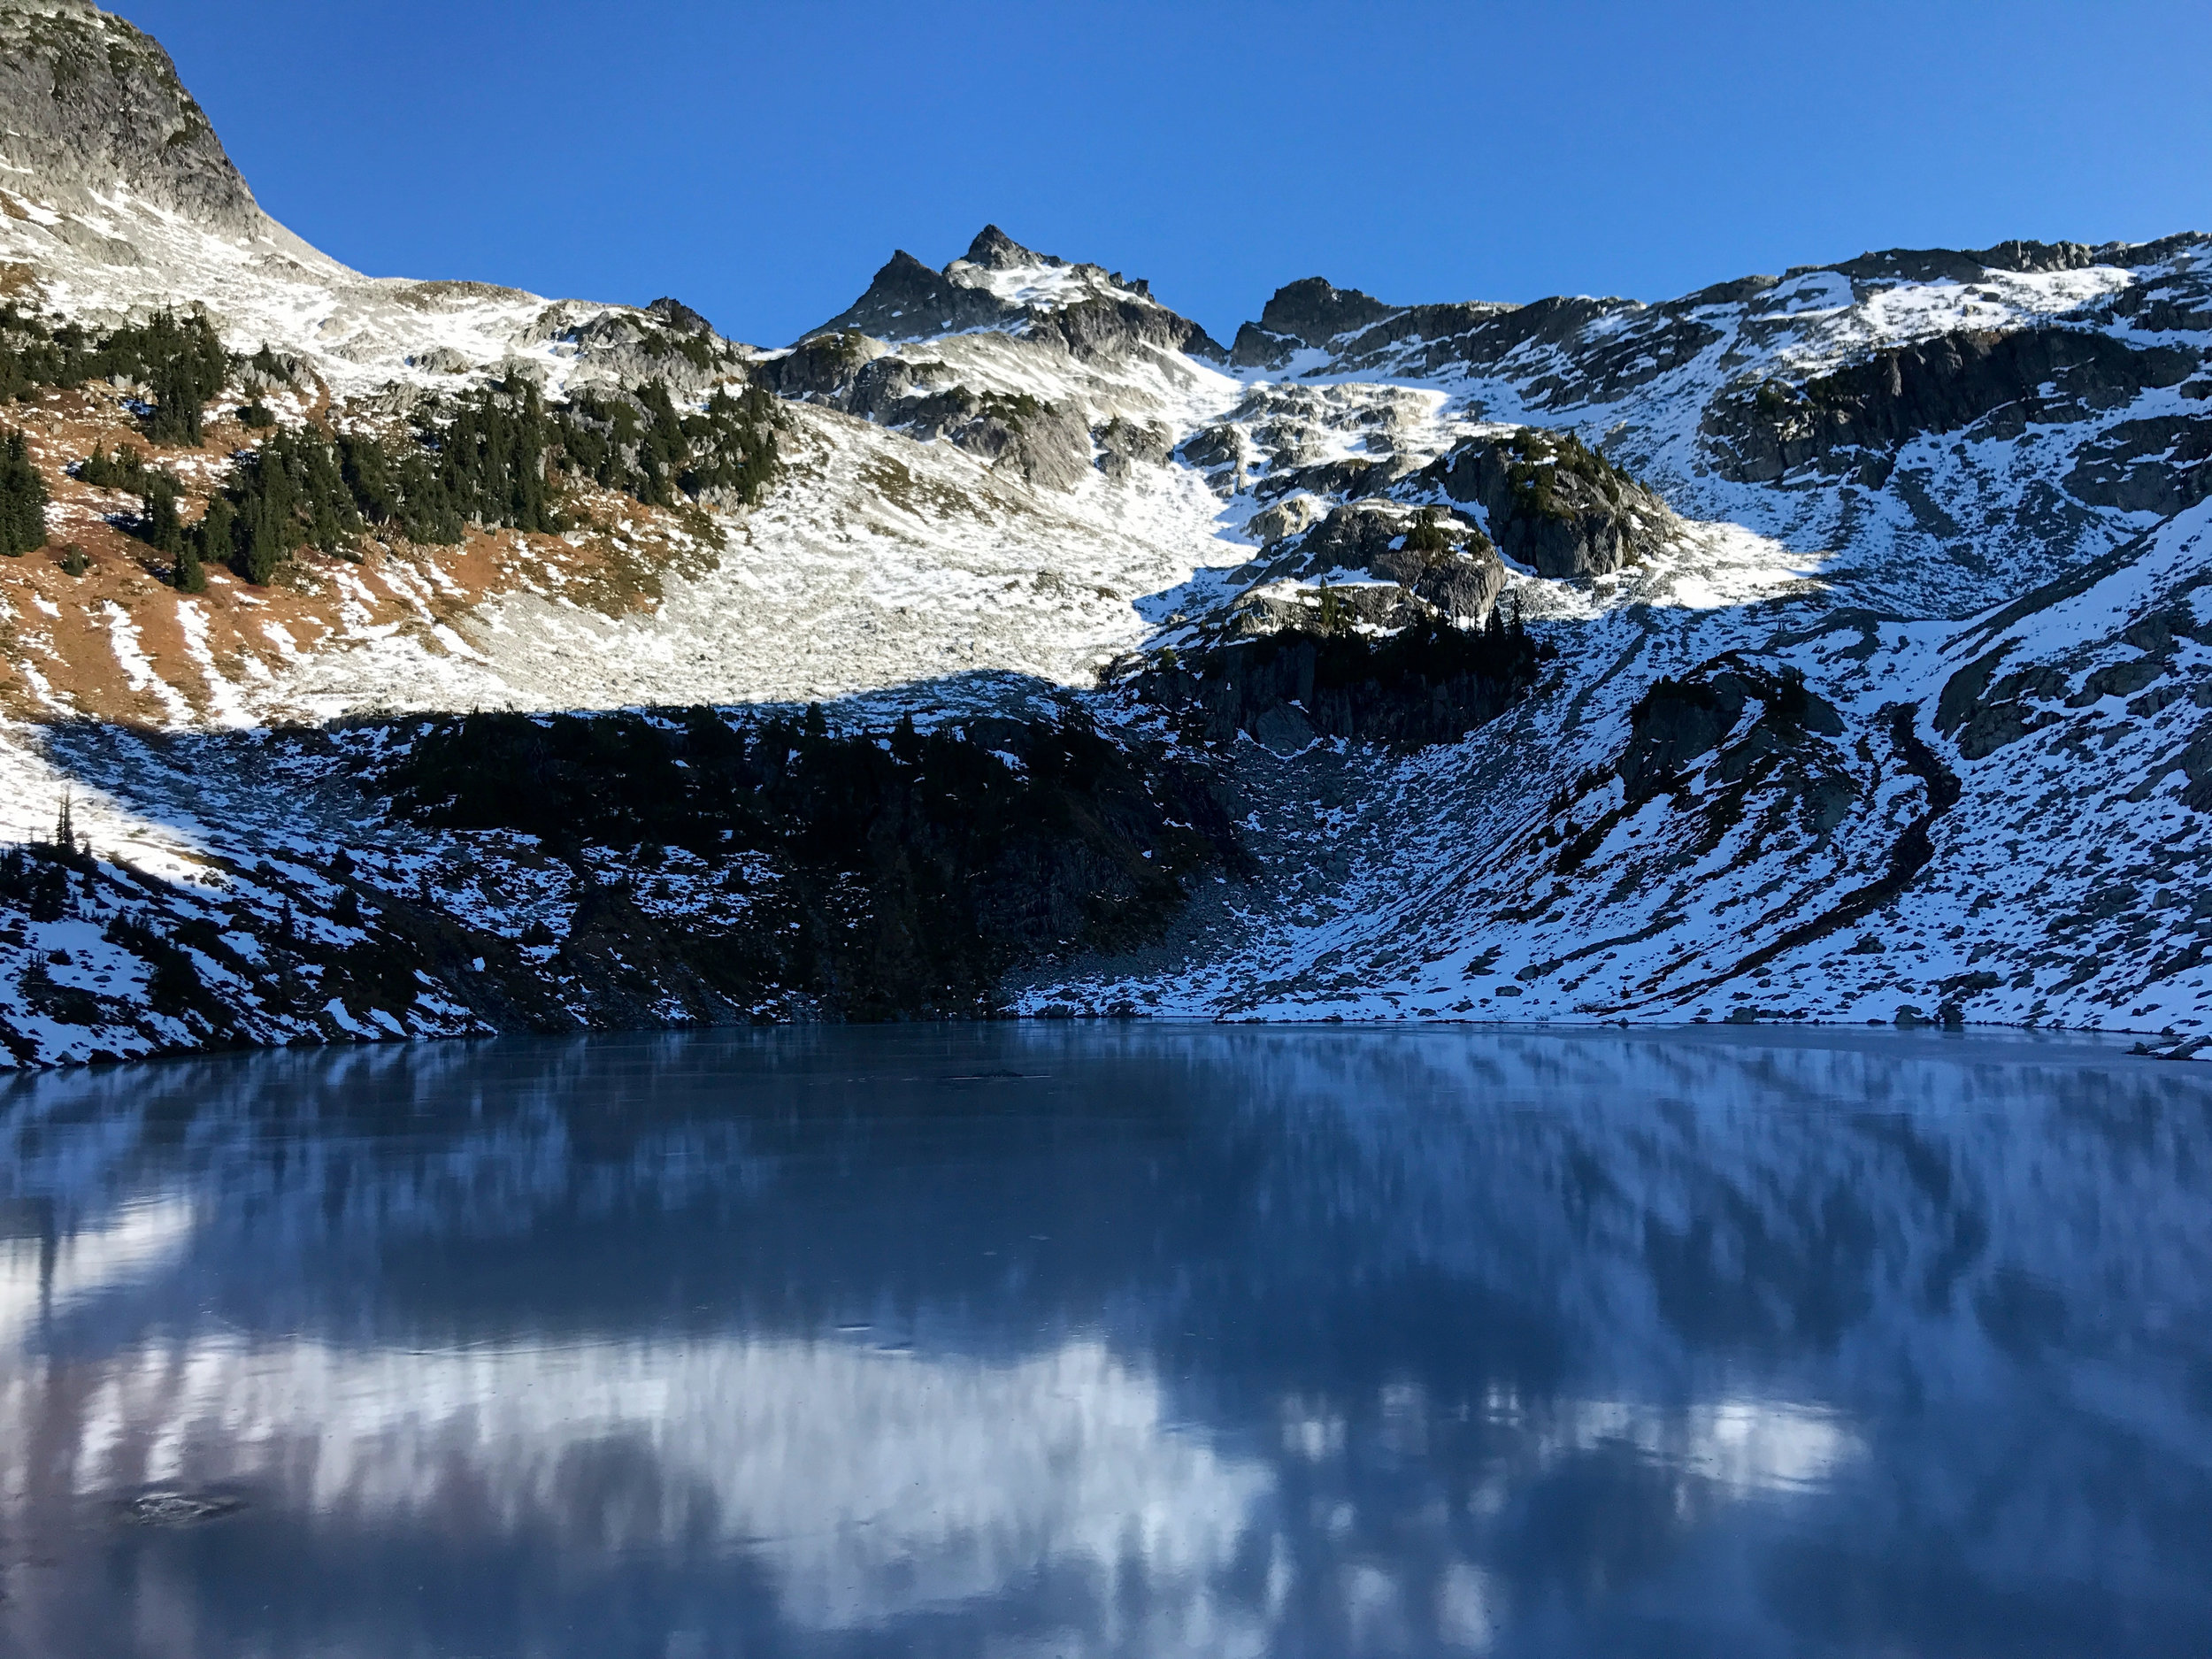 Looking up at the peak across a frozen lake. This was a couple of hours into the hike.